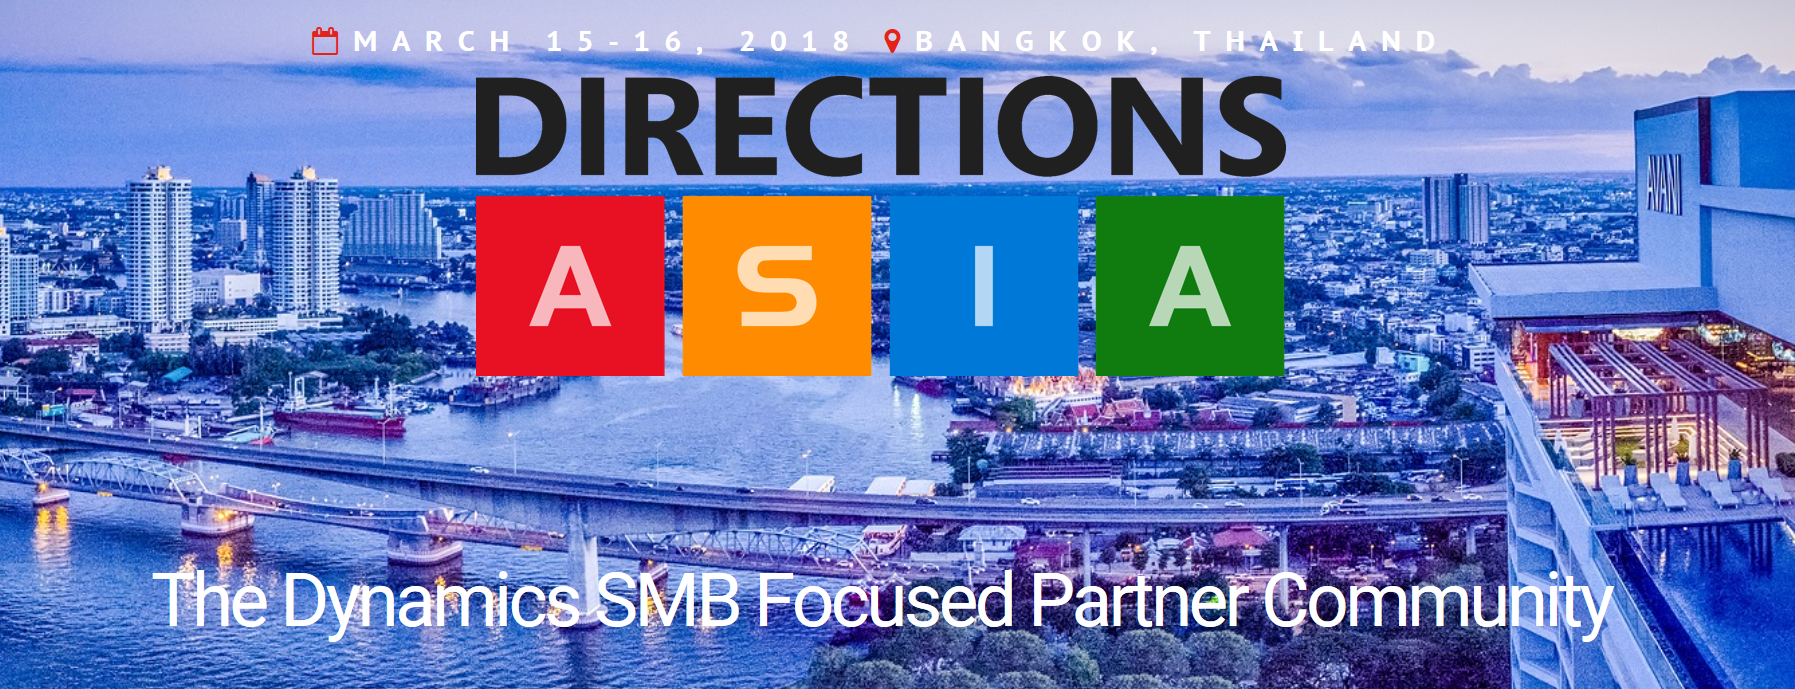 DirectionsASIA.PNG